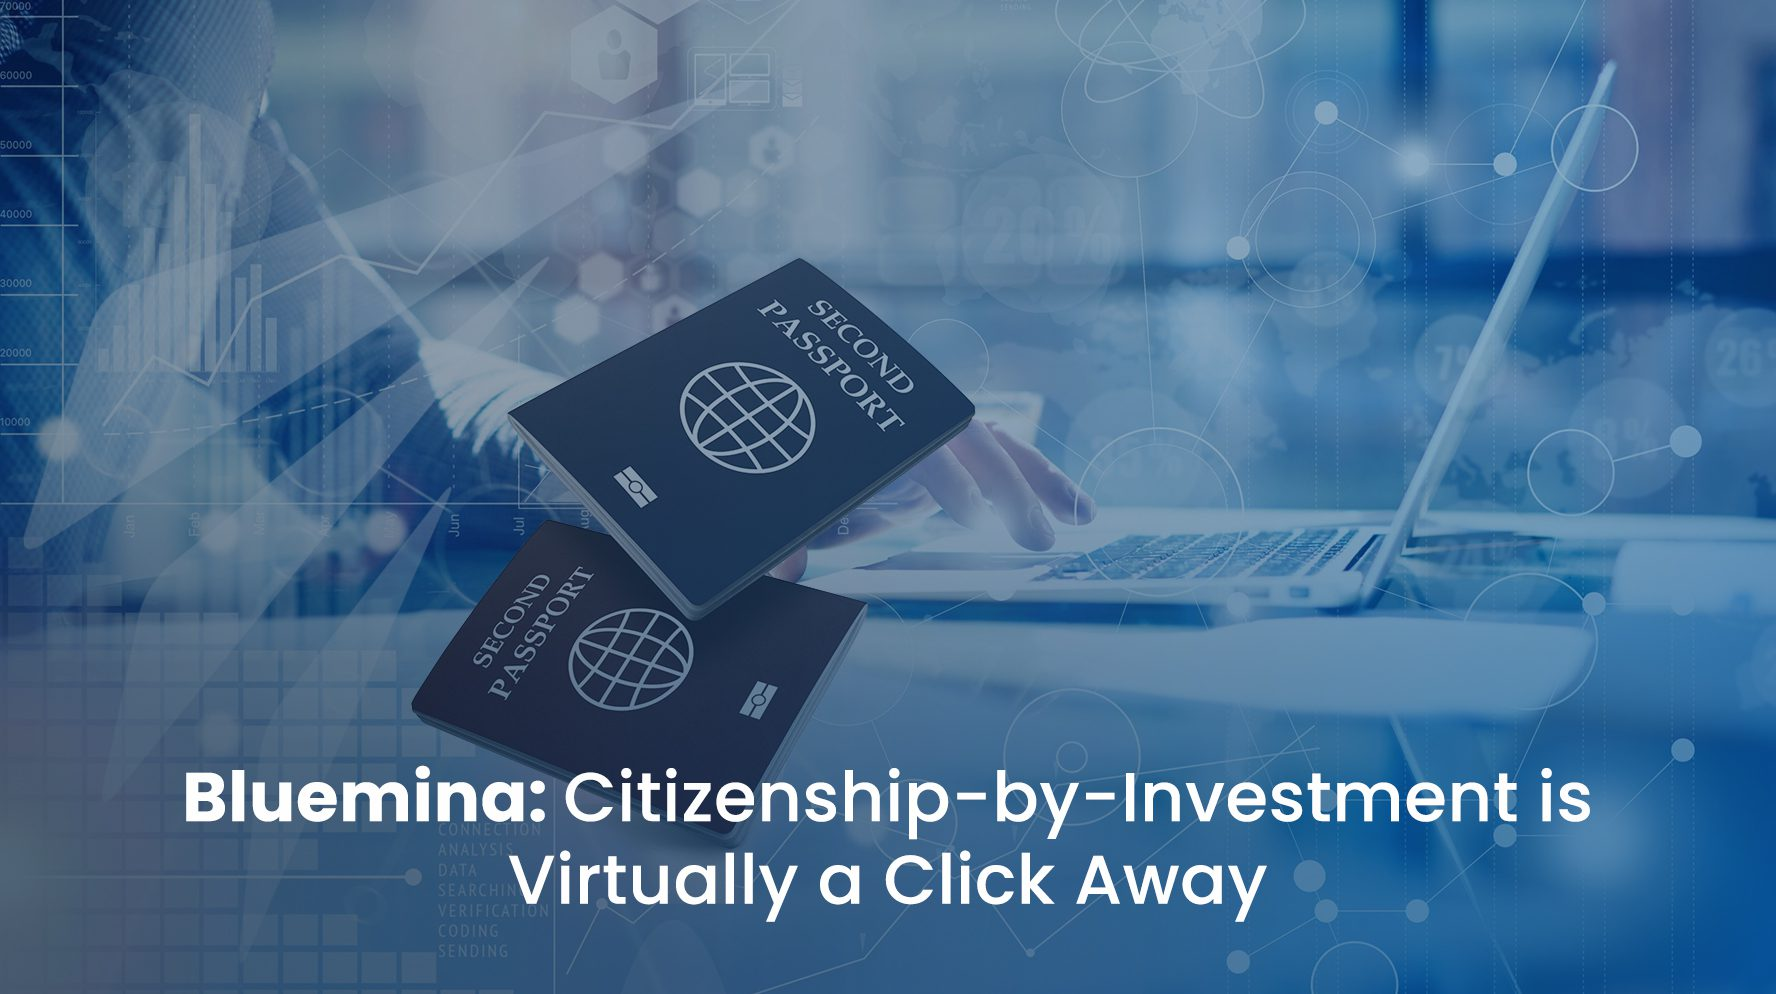 Bluemina: Citizenship-by-Investment is Virtually a Click Away